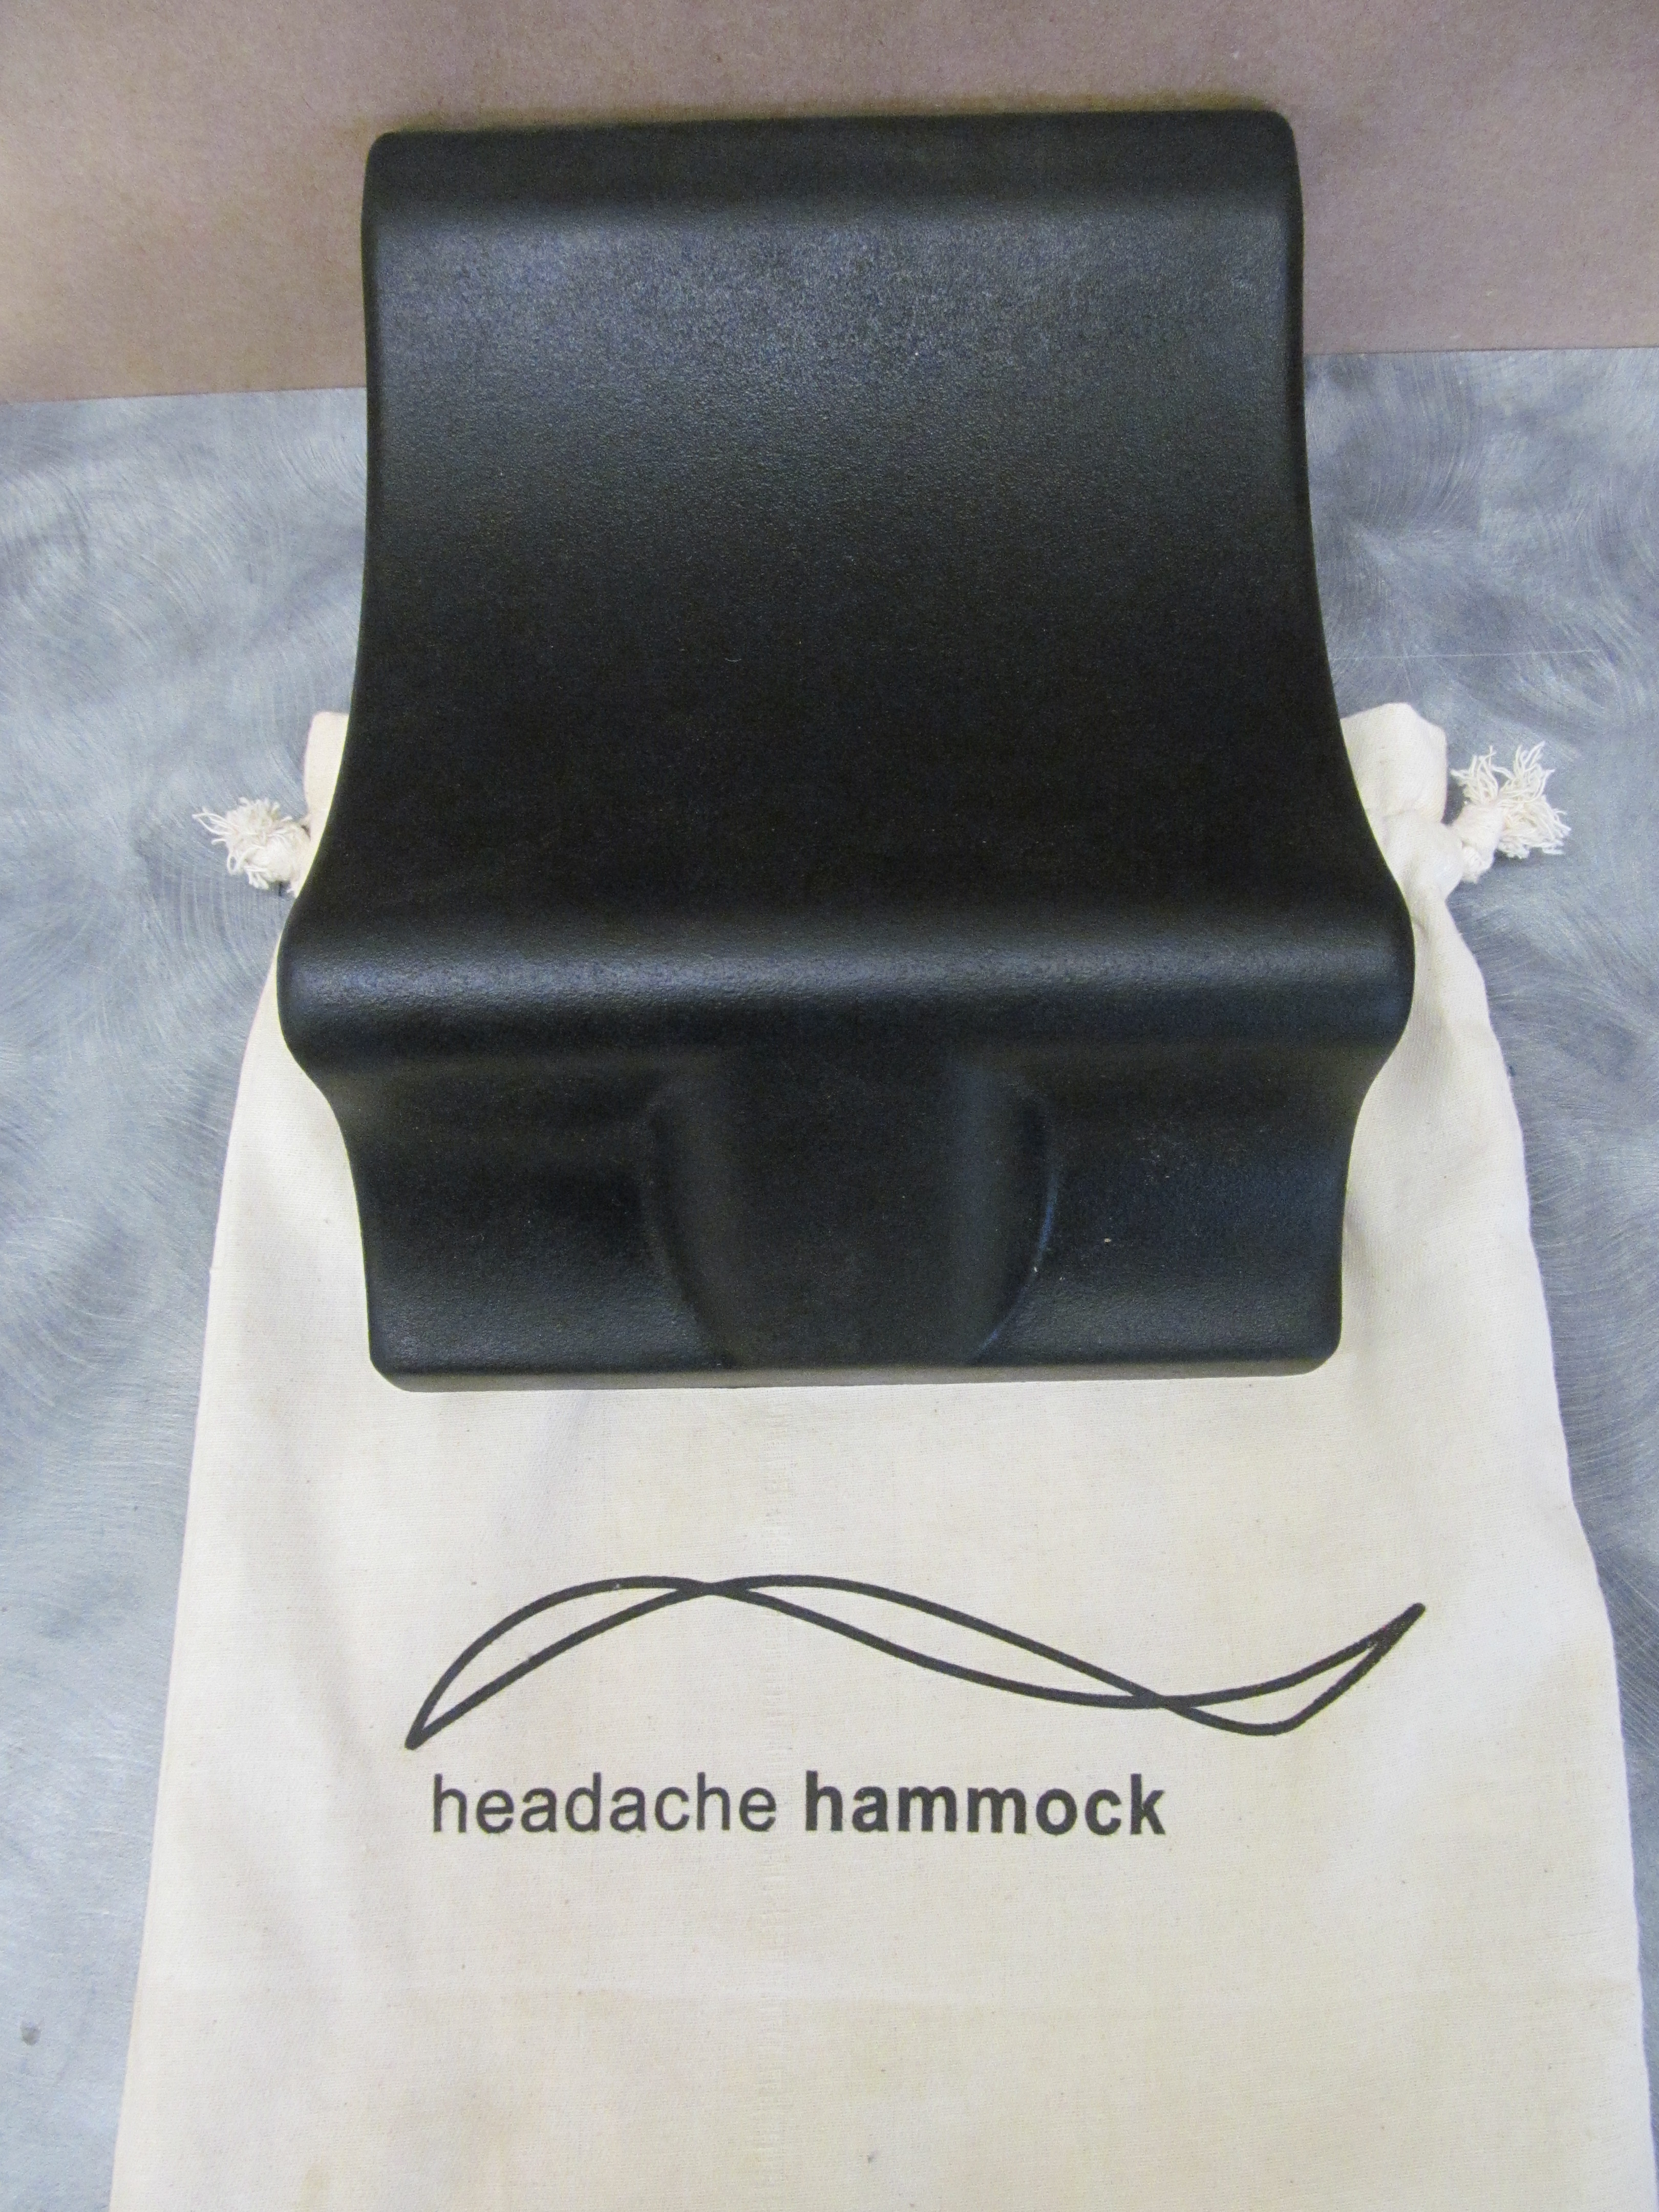 Headache Hammock - Natural Headache Relief - Natural Headache Remedy - All International shipping